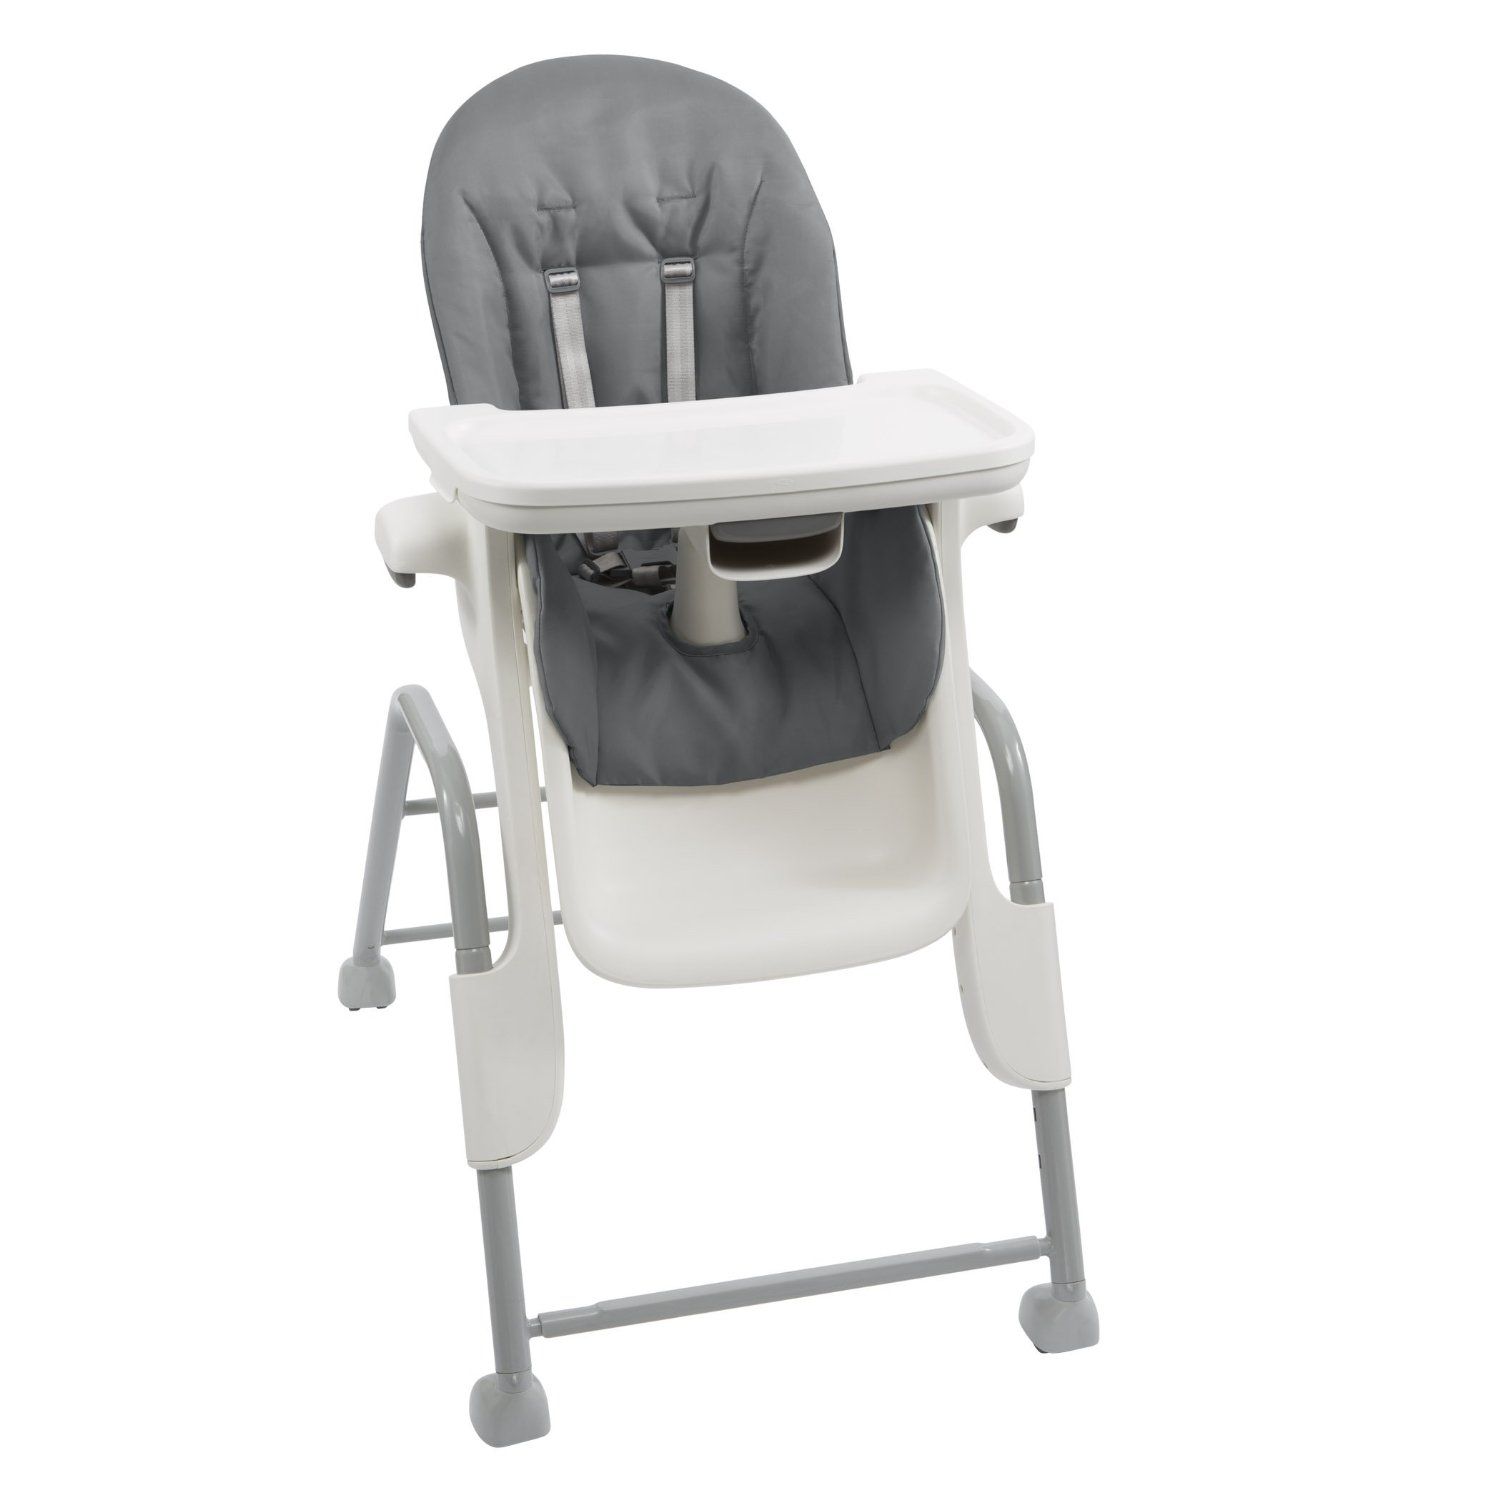 Oxo Tot Seedling High Chair Review